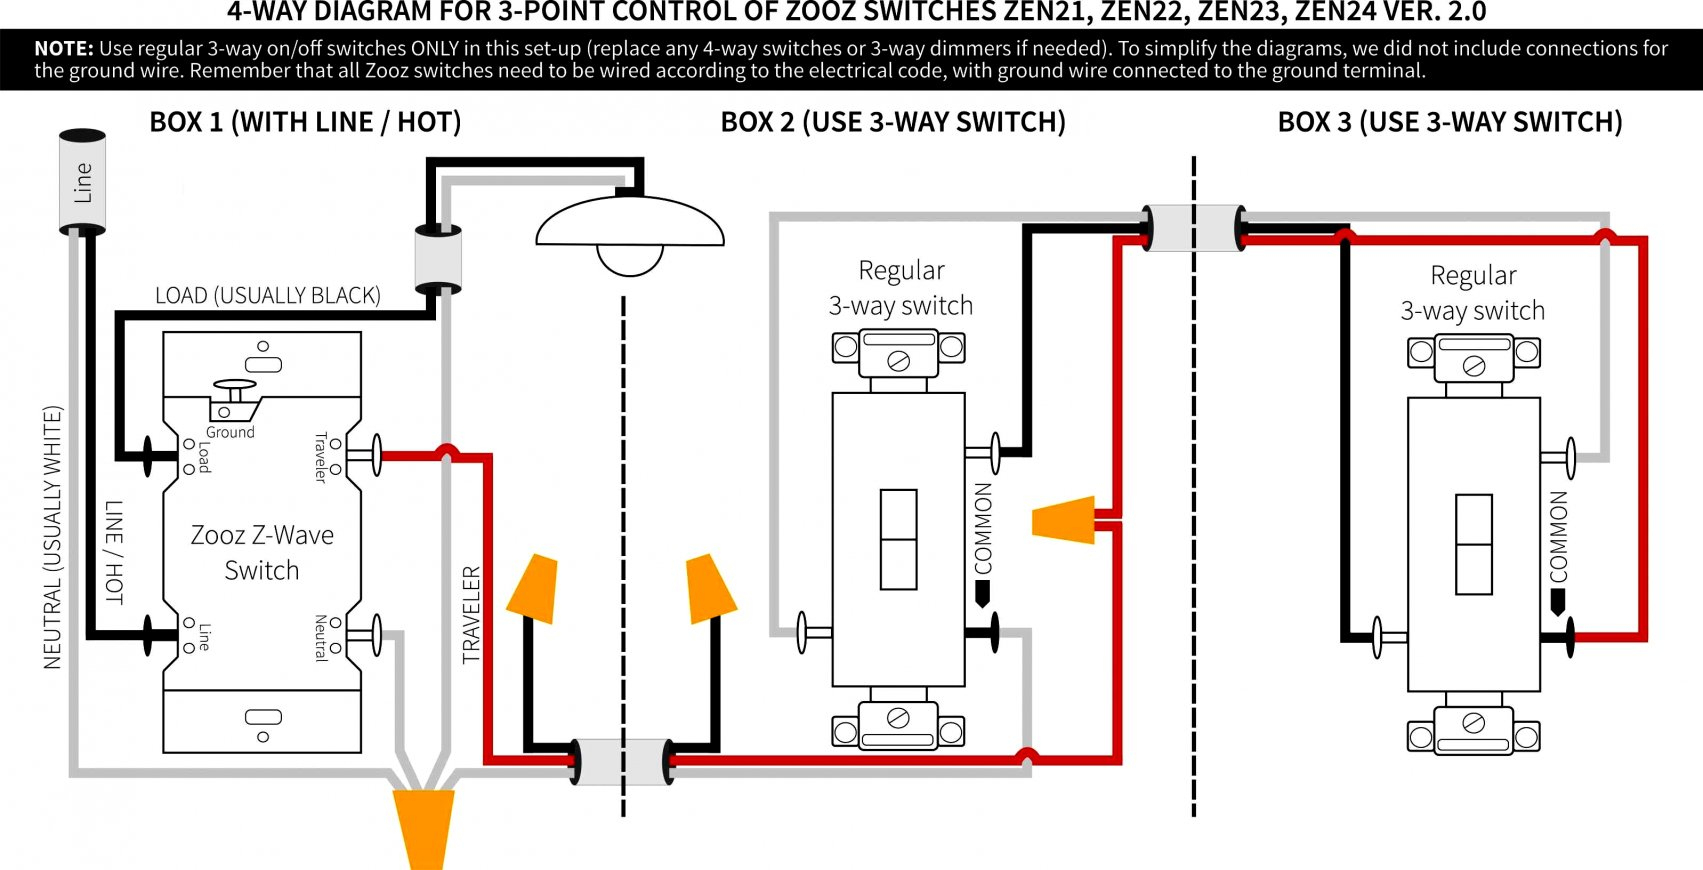 Leviton 3 Way Dimmer Switch Wiring Diagram - Data Wiring Diagram Site - Leviton Dimmers Wiring Diagram